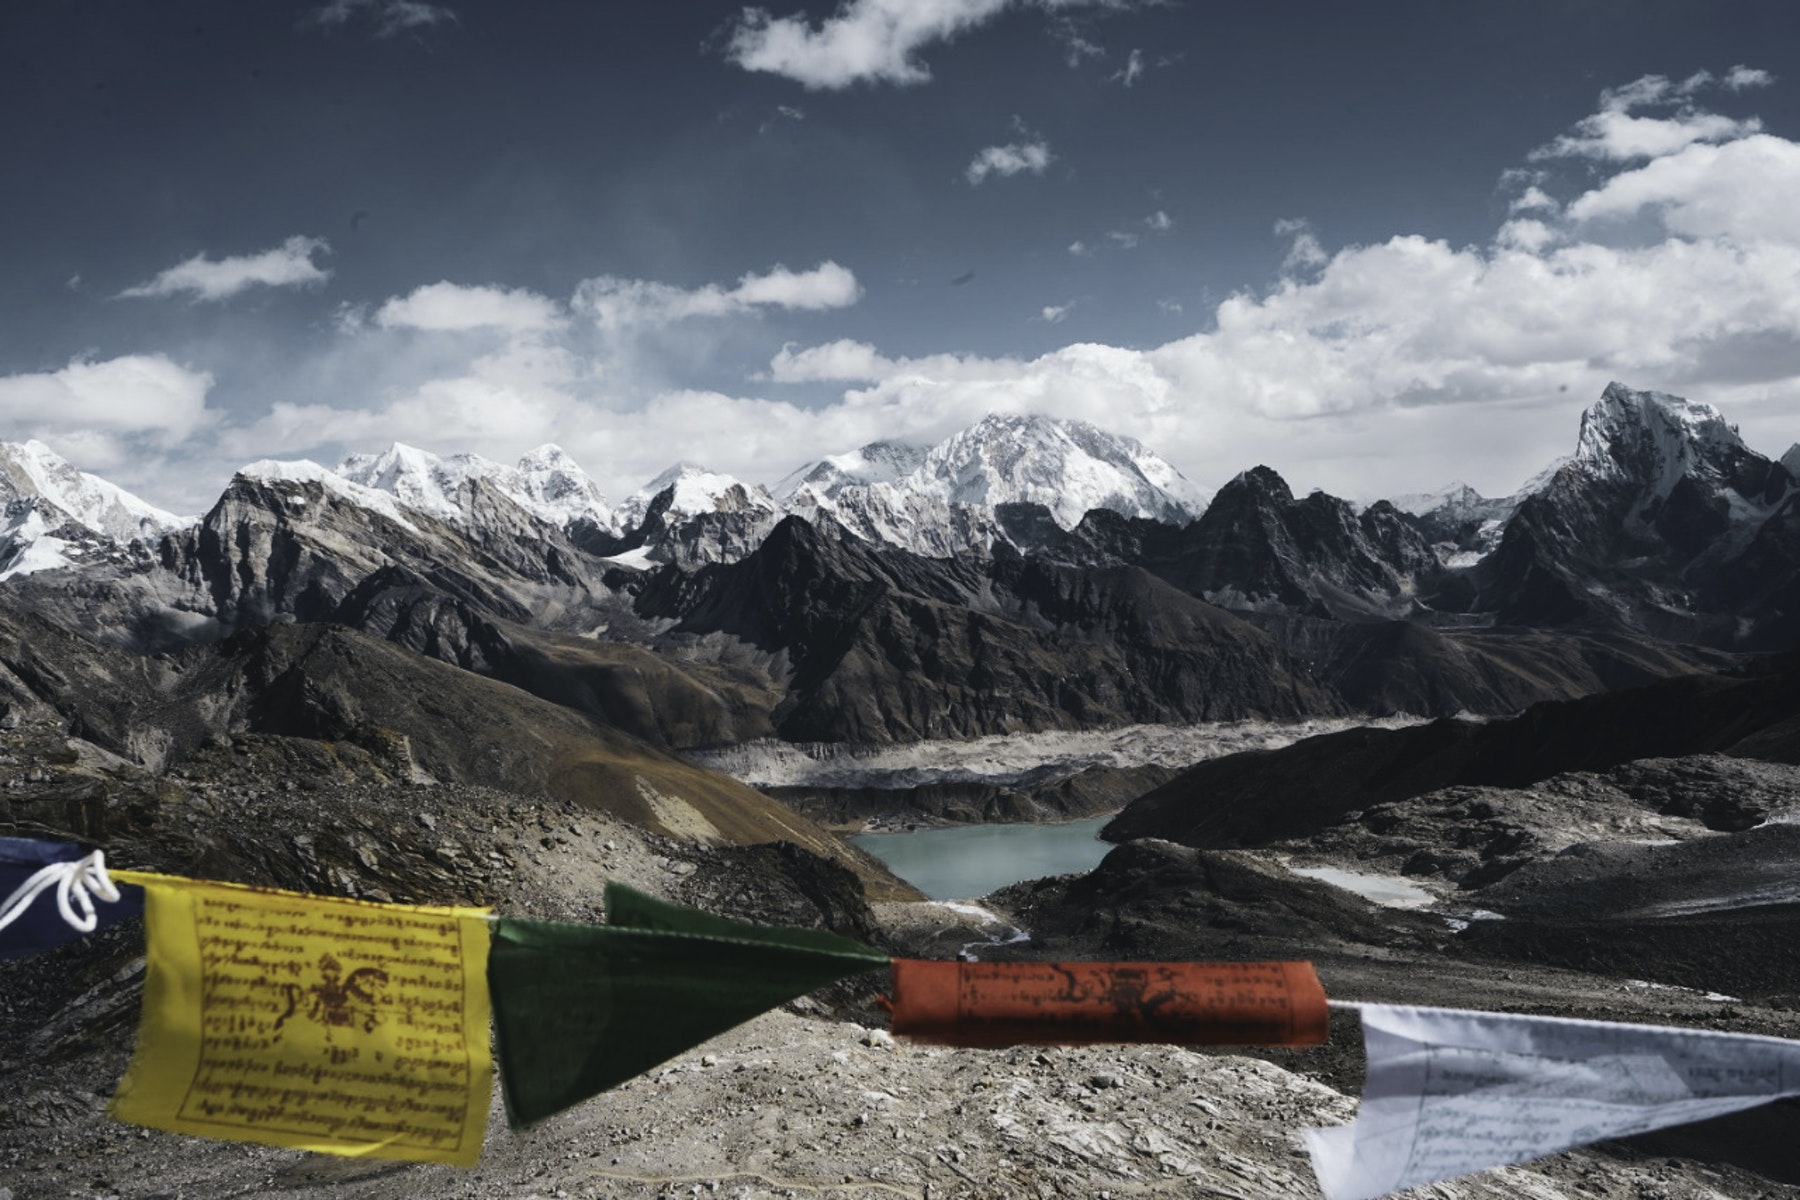 Everest, in the background towering above the infamous Khumbu Icefall and Glacier